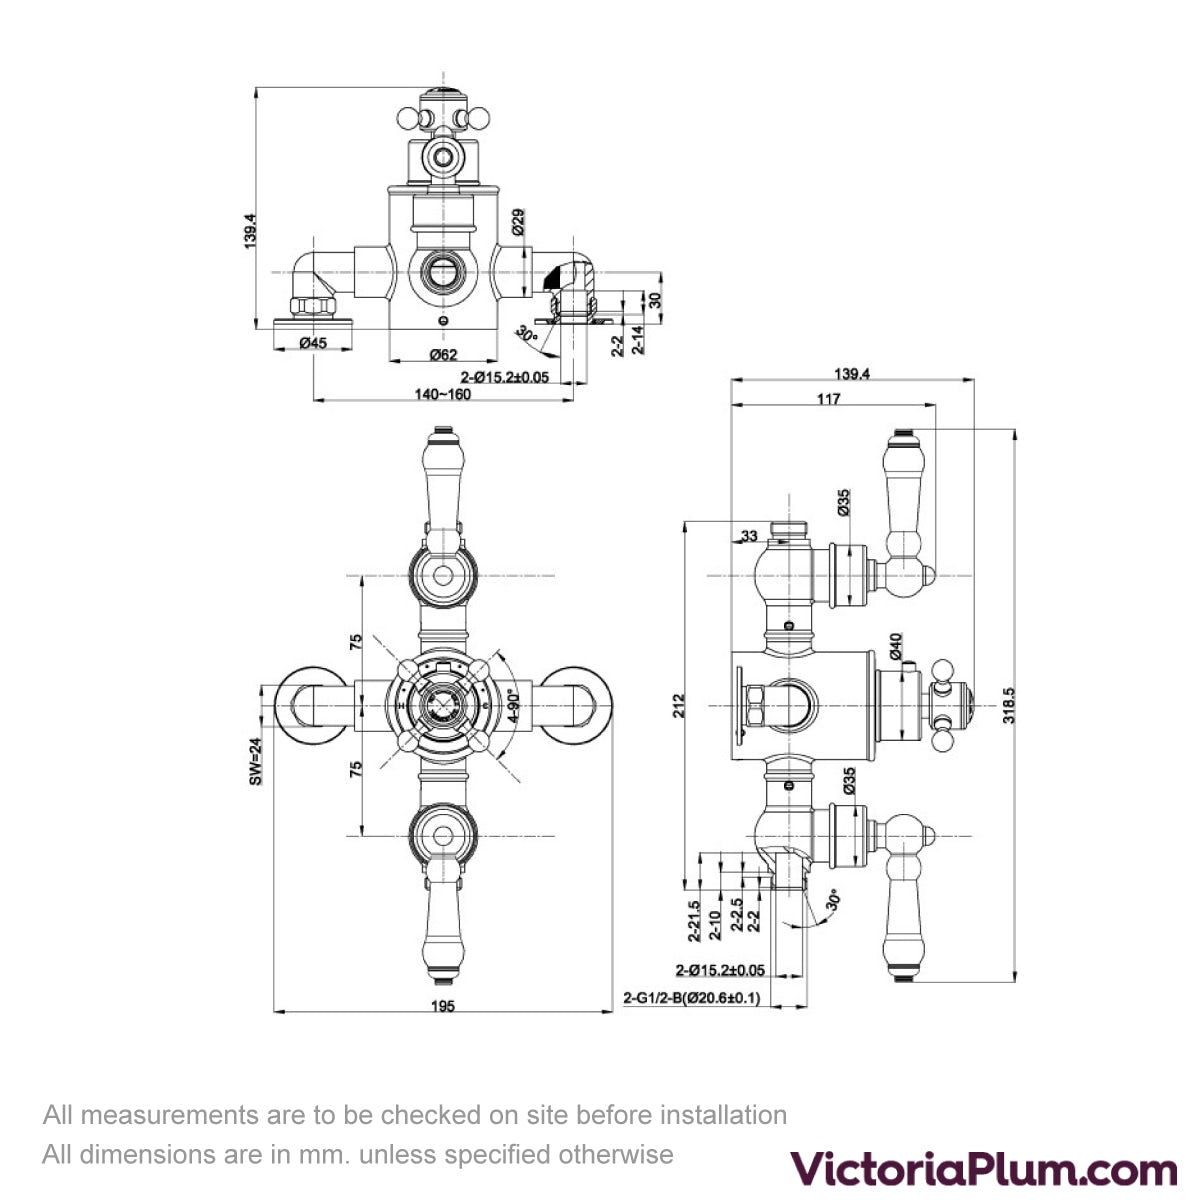 Dimensions for The Bath Co. Winchester exposed shower valve with dual outlet